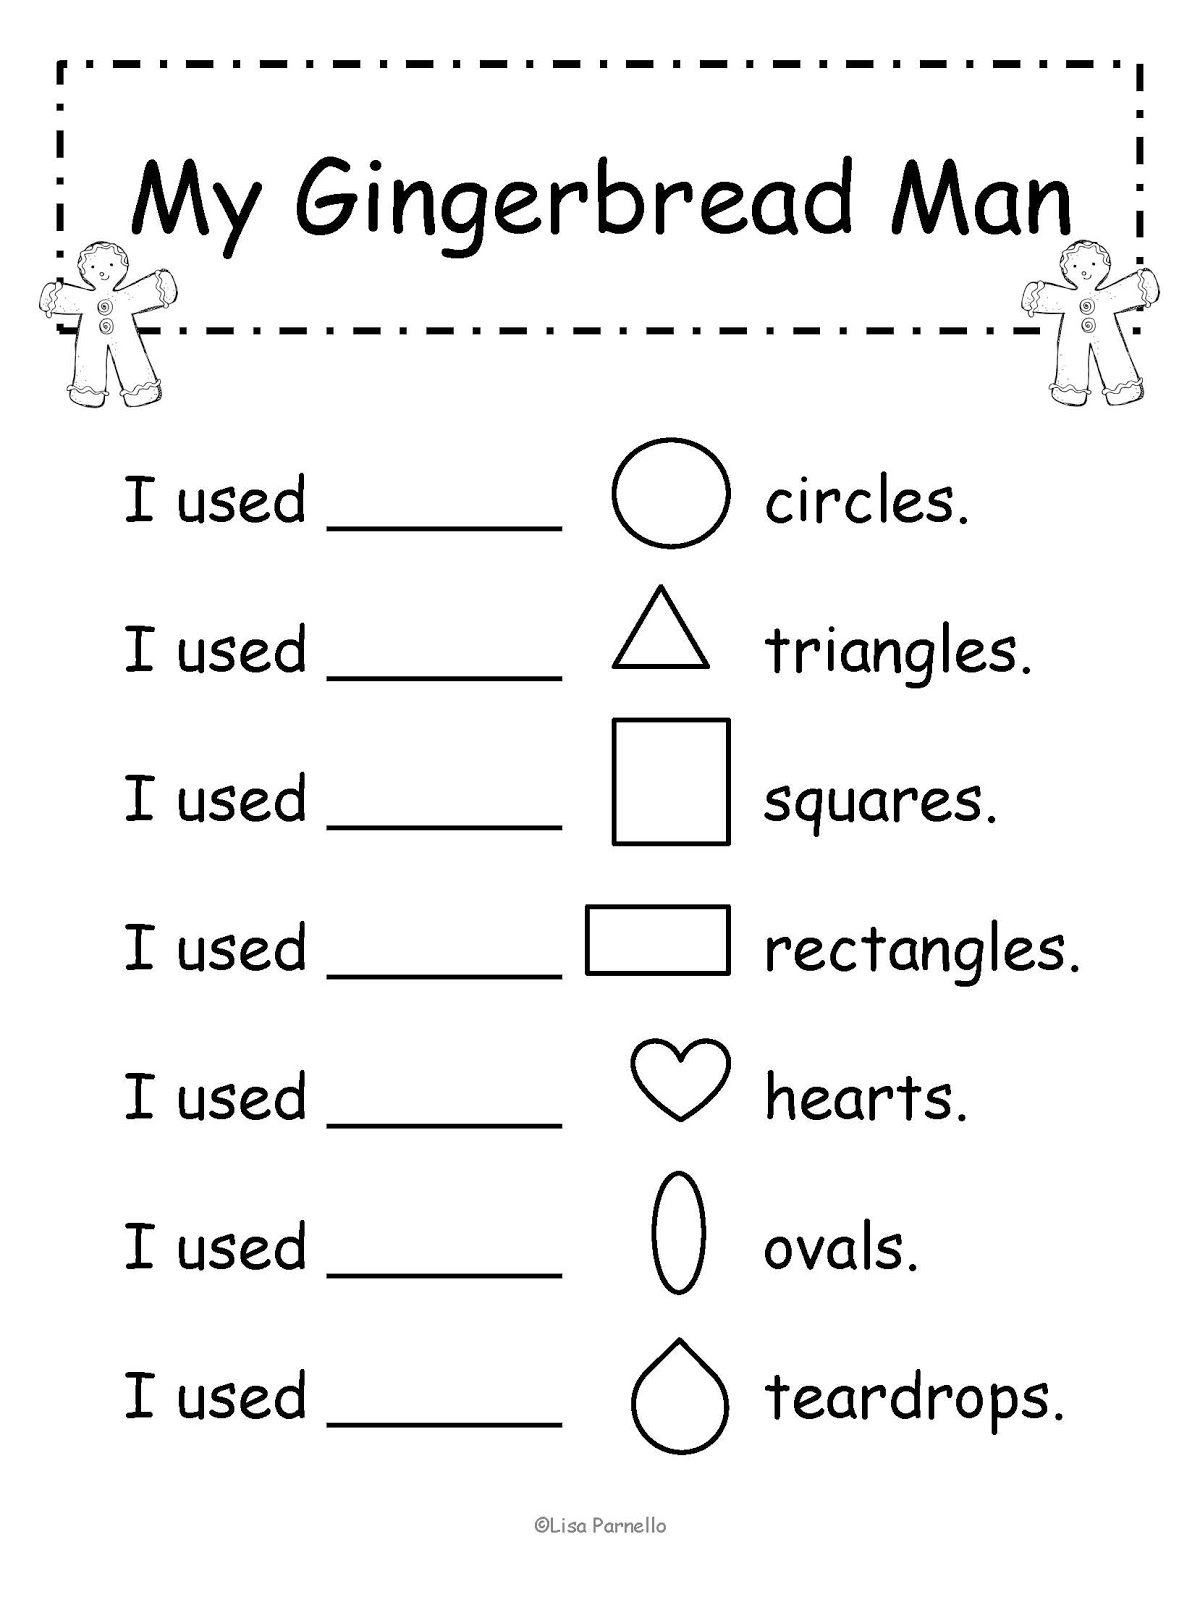 Gingerbread Man Activities And Worksheets Sketch Coloring Page